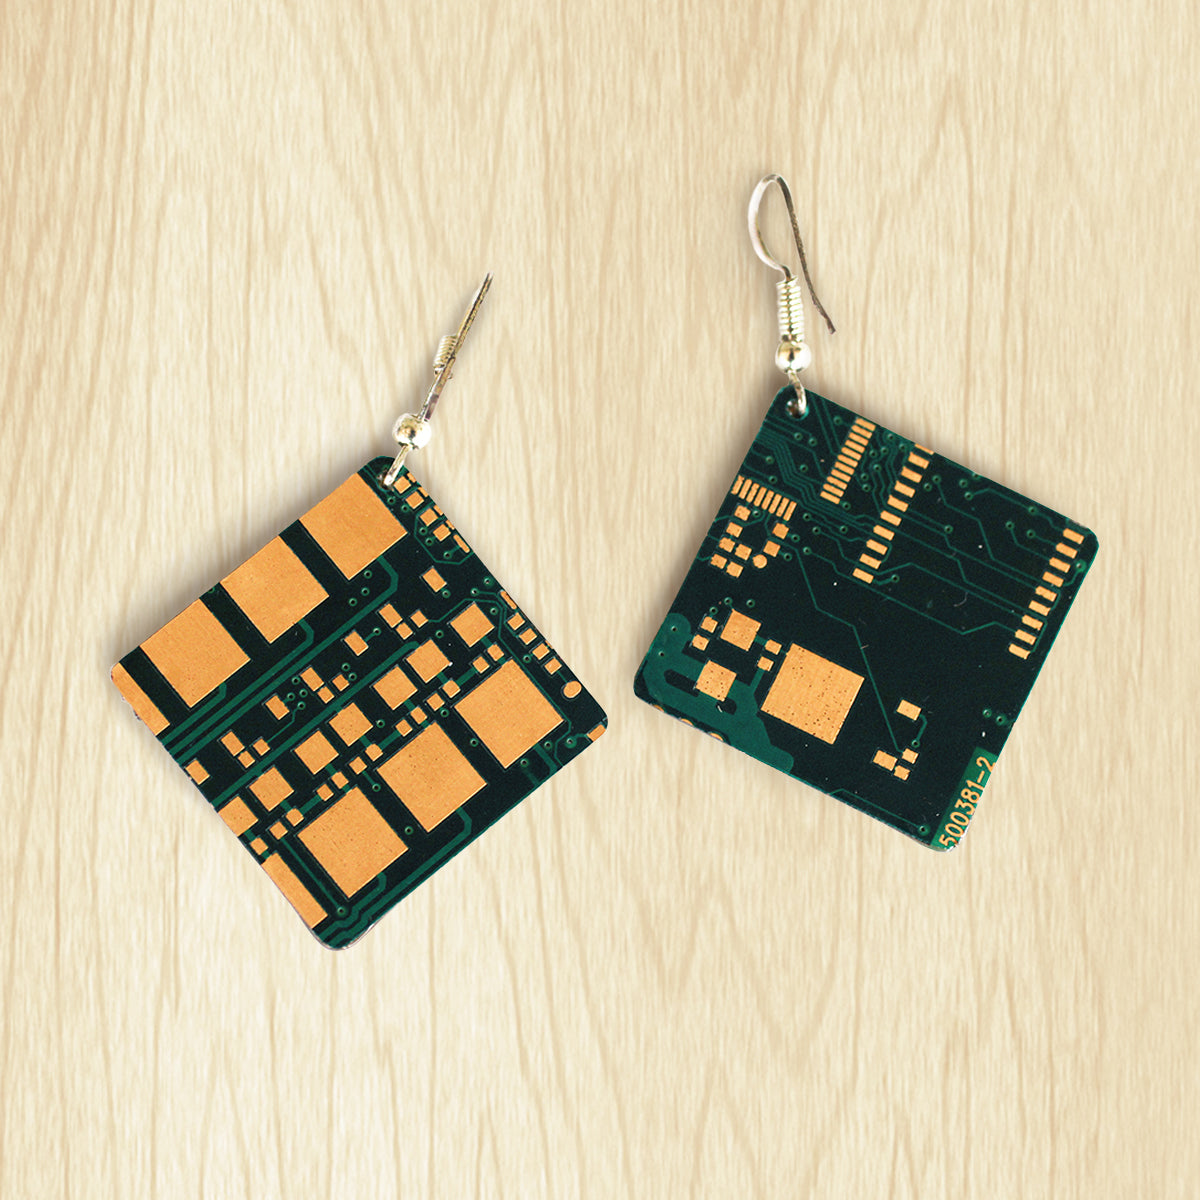 Circuit Board Square Earrings | Upcycled, Recycled, Repurposed, Reimagined | Changing Tides